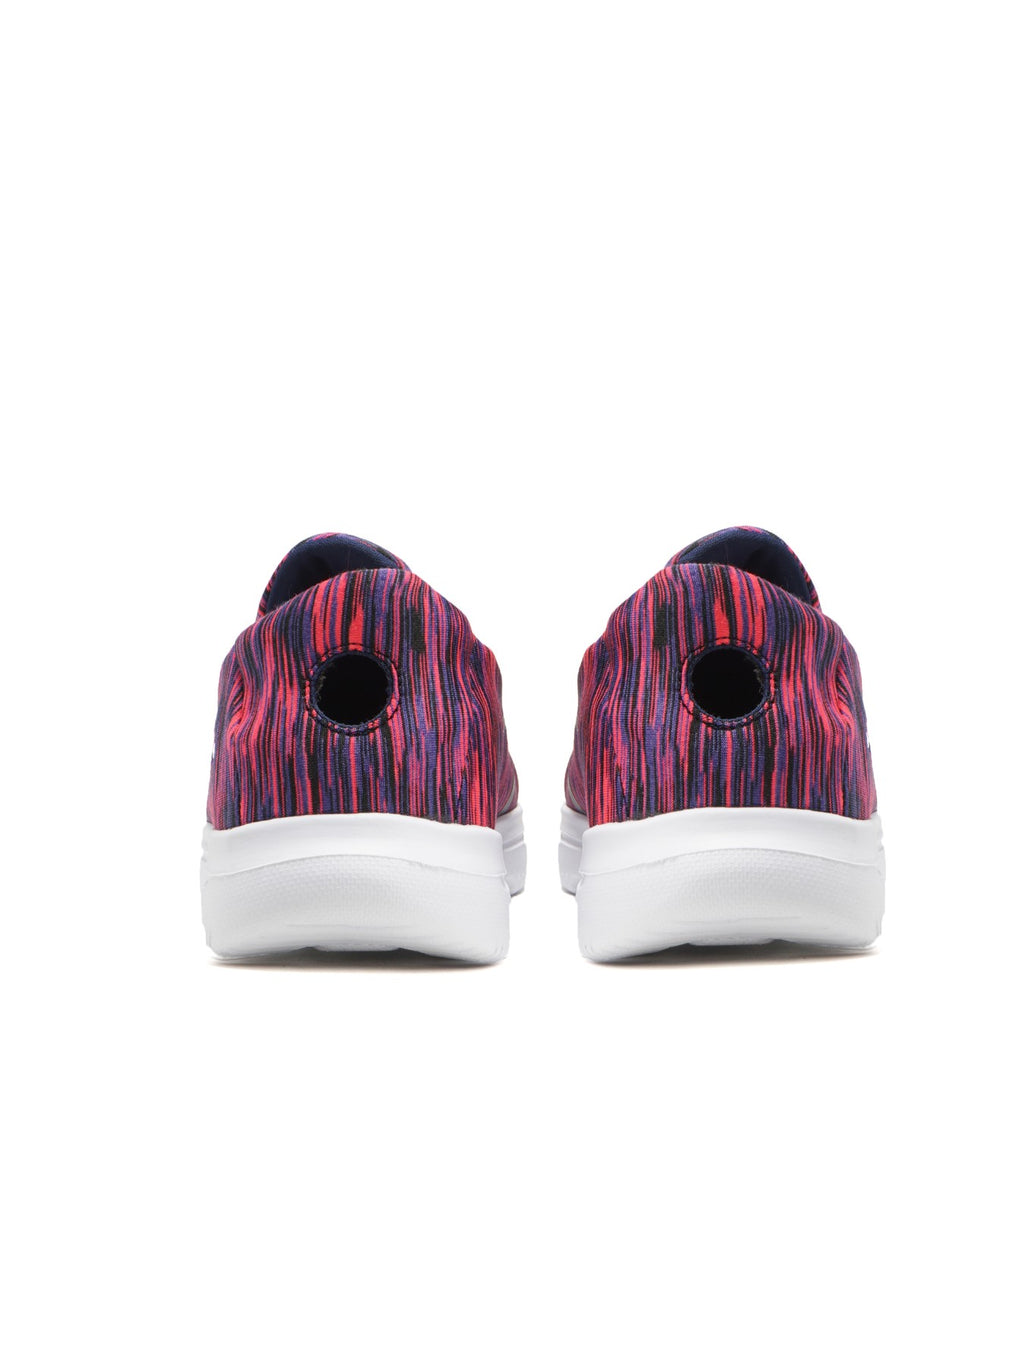 Larrie Purple Stylish Casual Sporty Sneakers